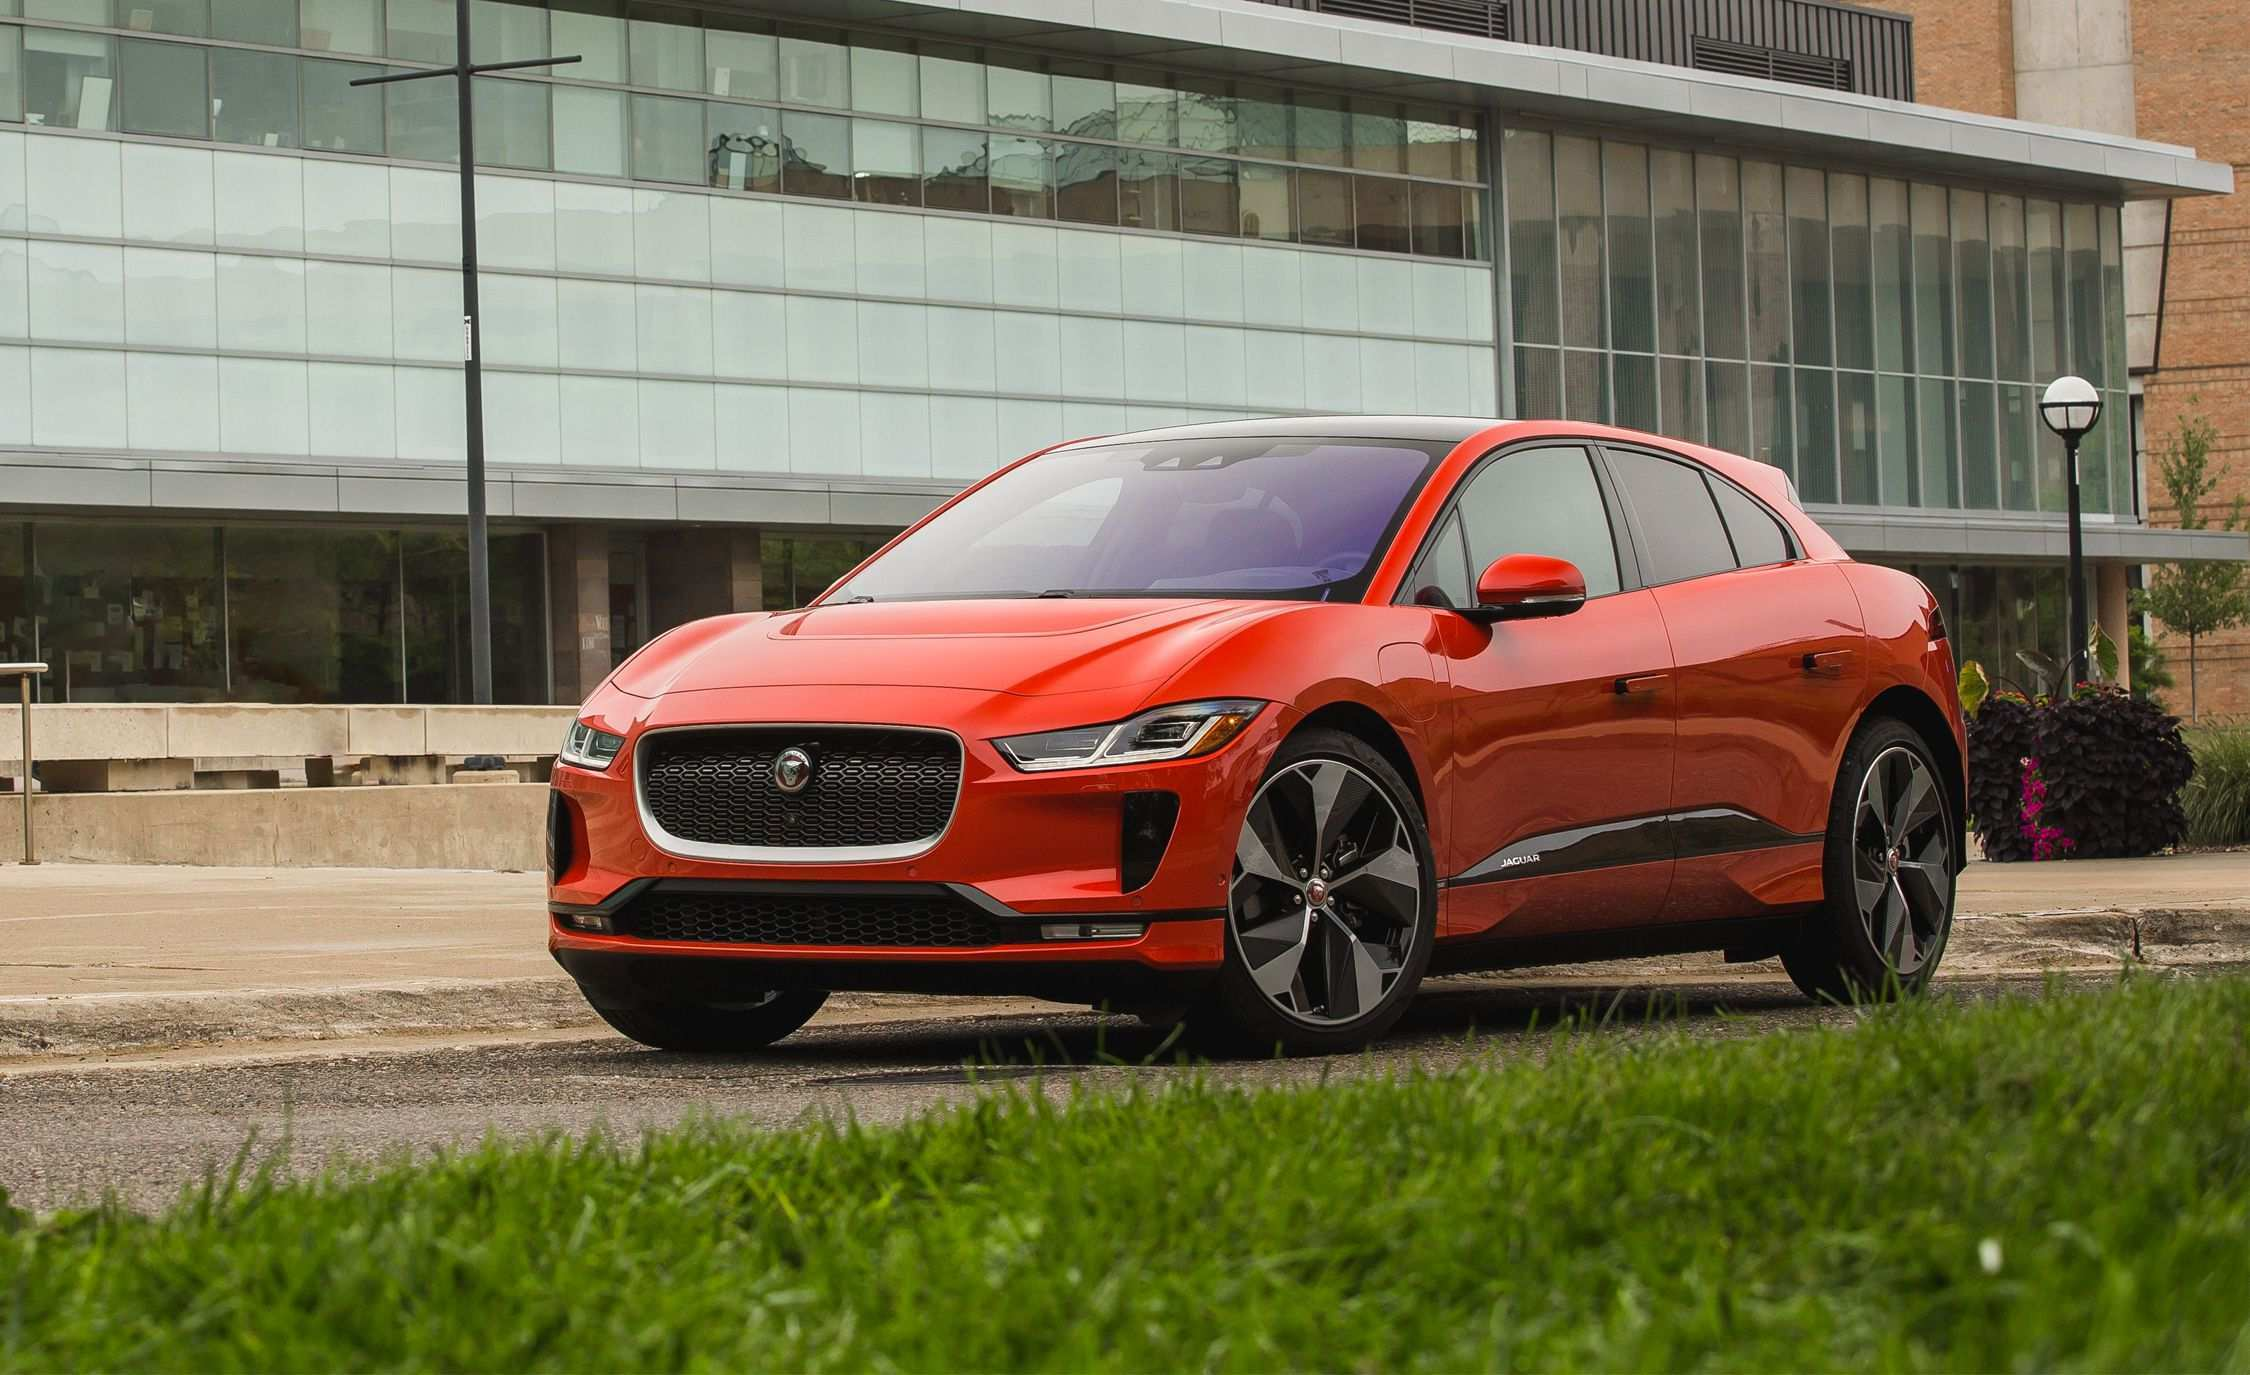 67 New New 2019 Jaguar I Pace Wiki Review Specs And Release Date Review for New 2019 Jaguar I Pace Wiki Review Specs And Release Date